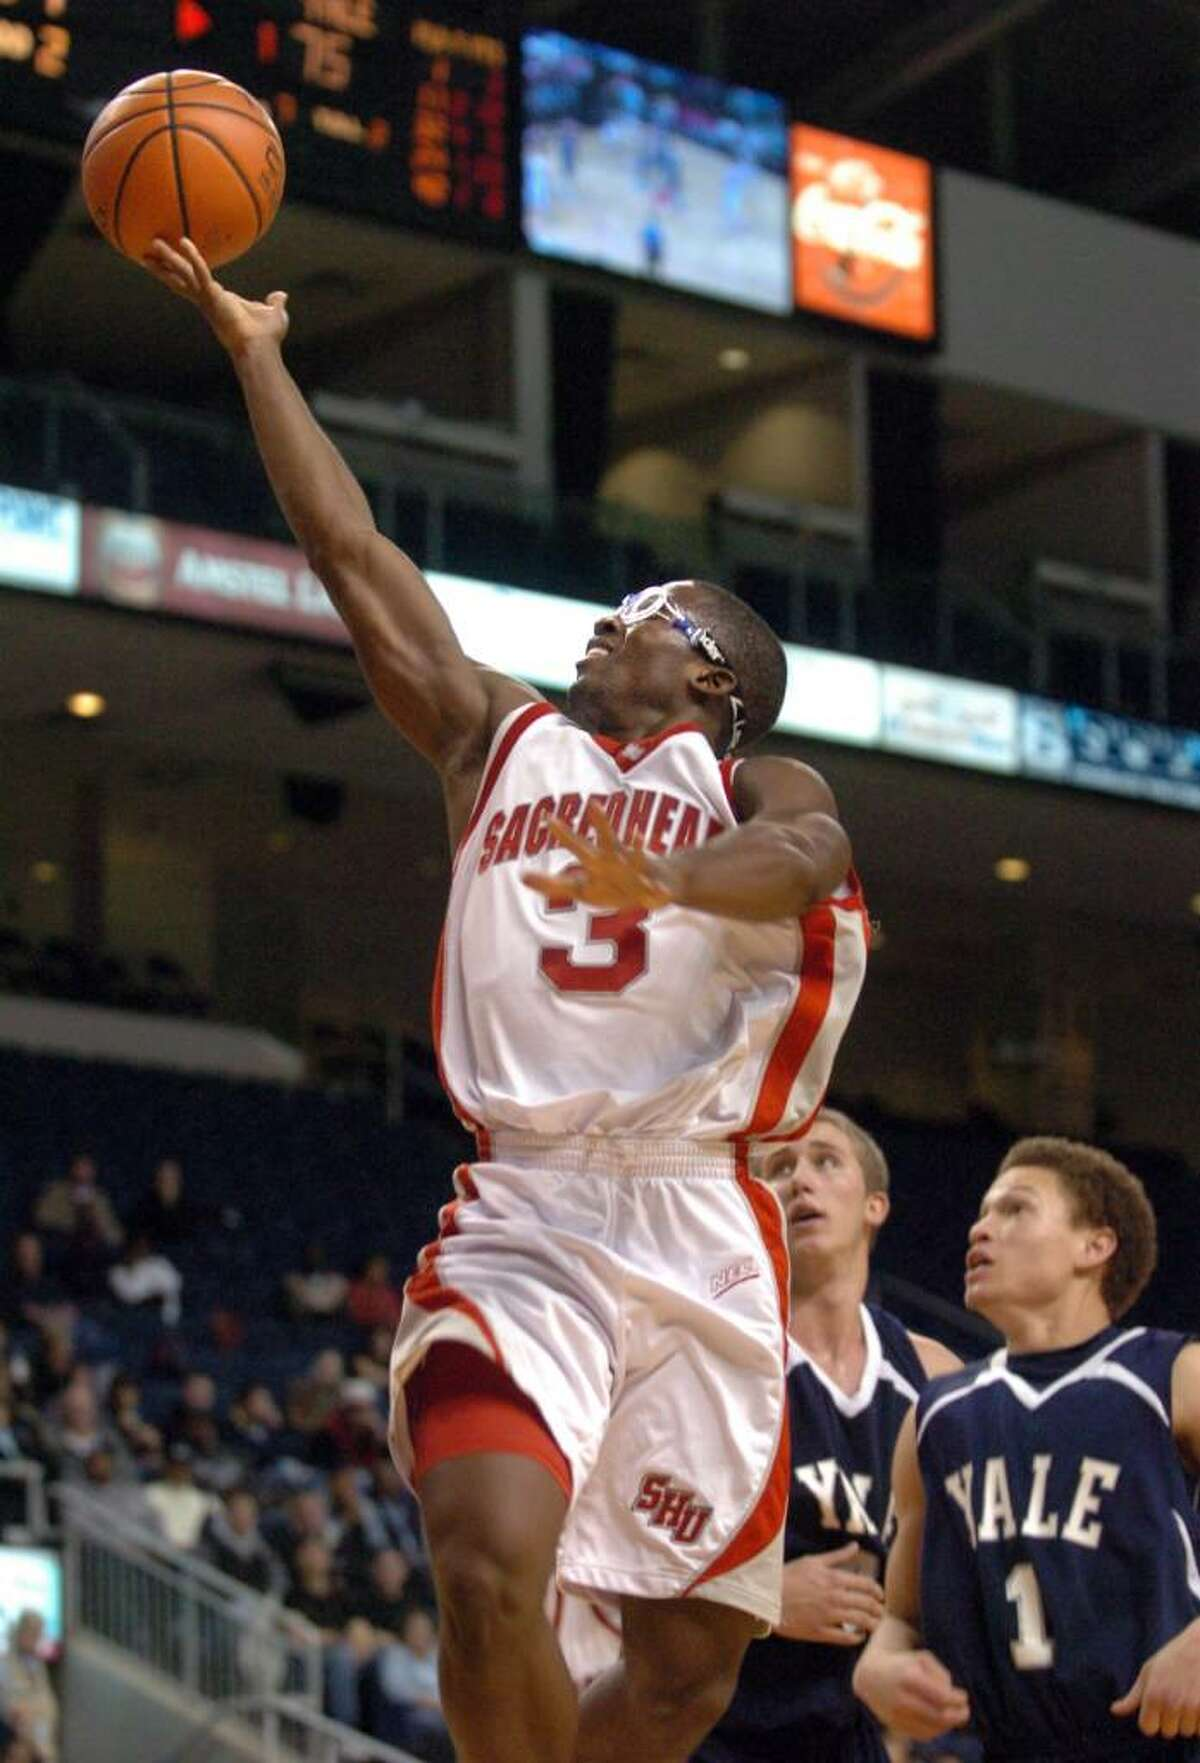 Sacred Heart's Jerrell Thompson lays up the ball during the second half of Friday night's Connecticut 6 classic game against Yale at the Arena at Harbor Yard.